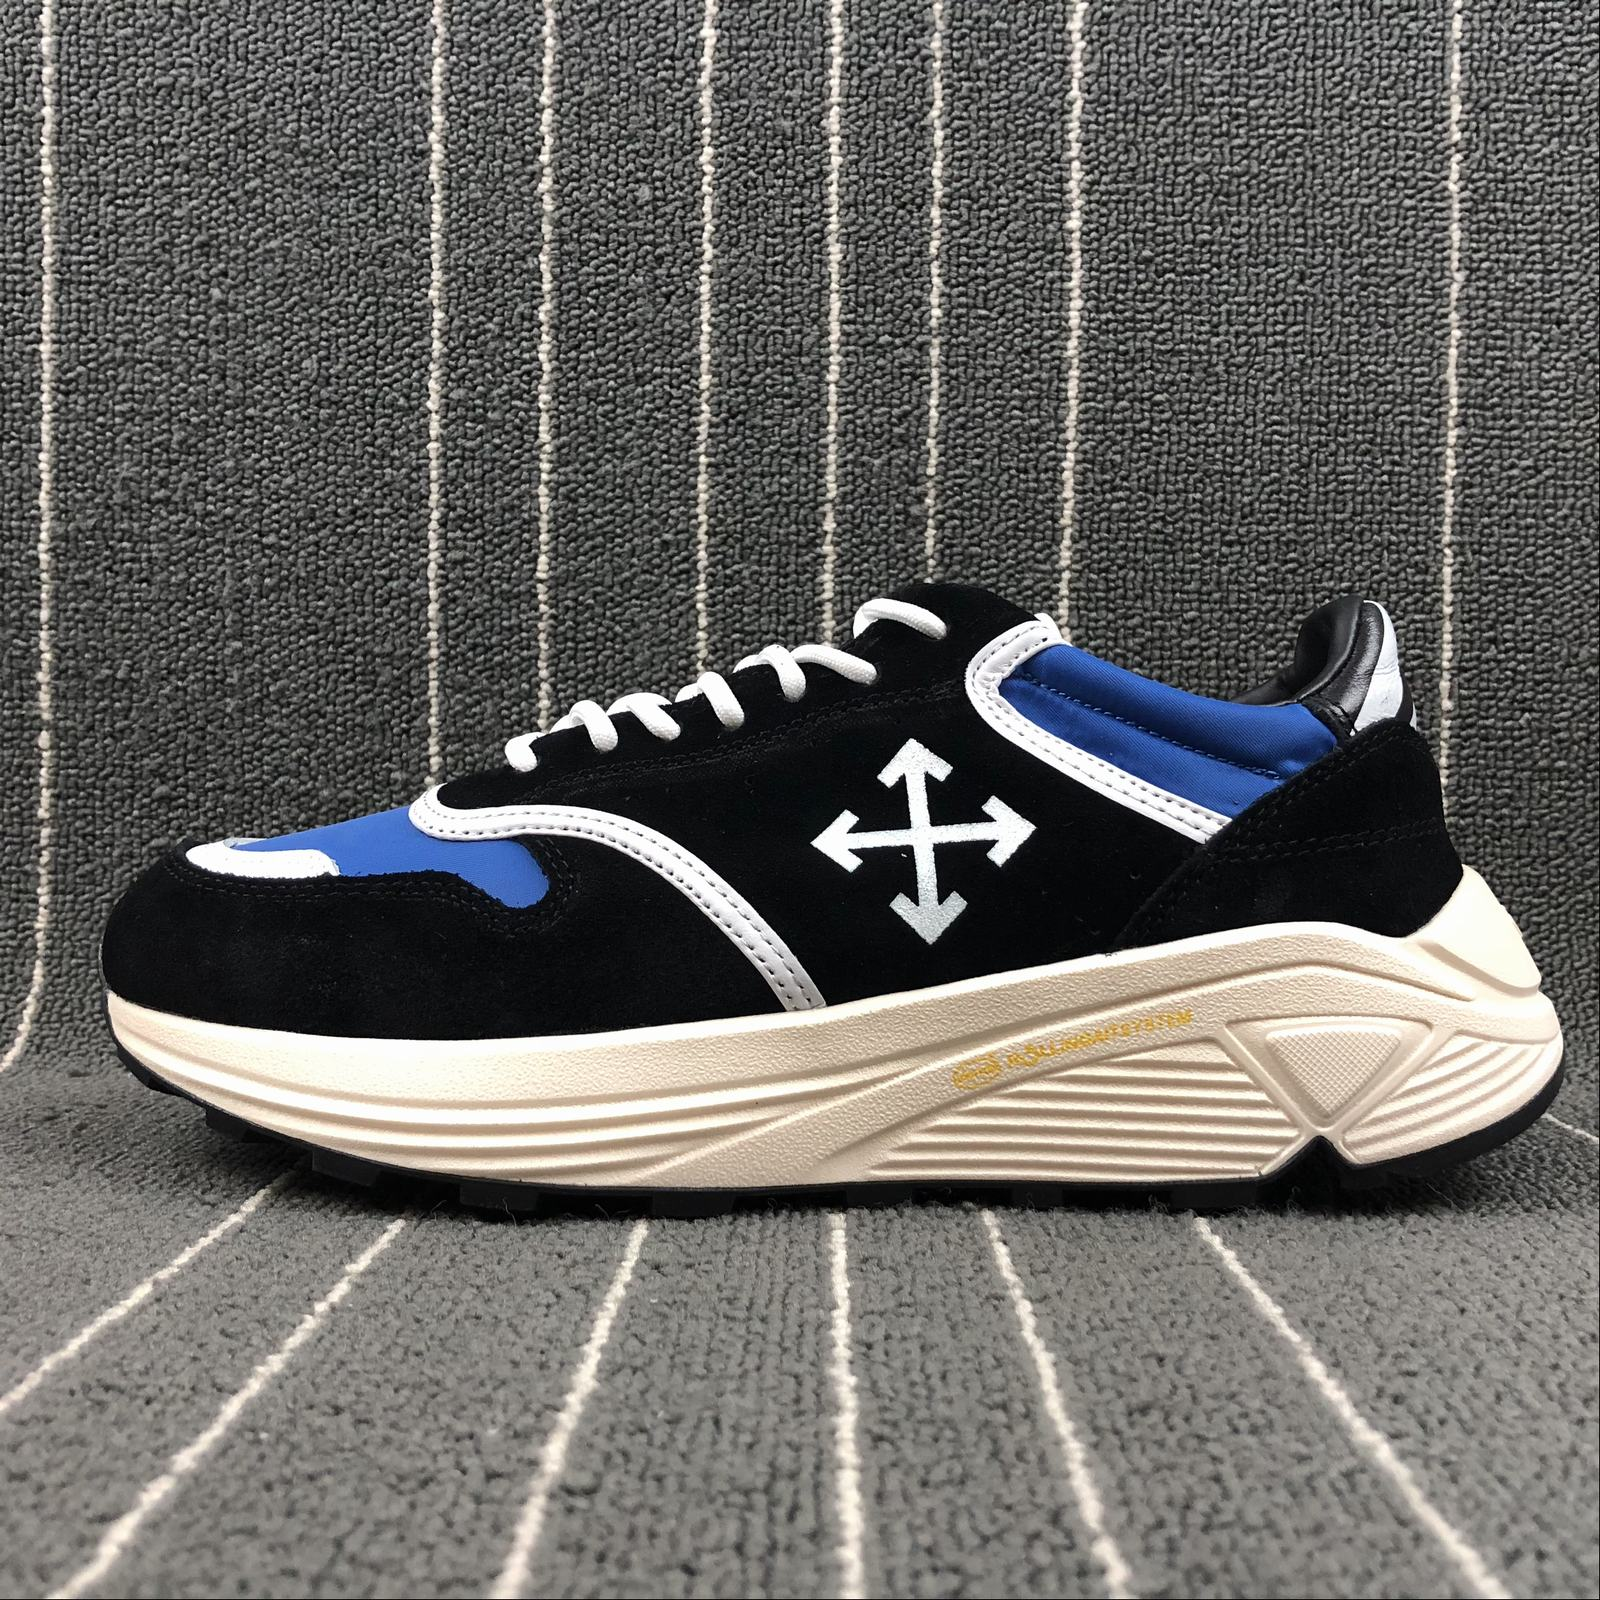 Off-White Arrow detail Low Women